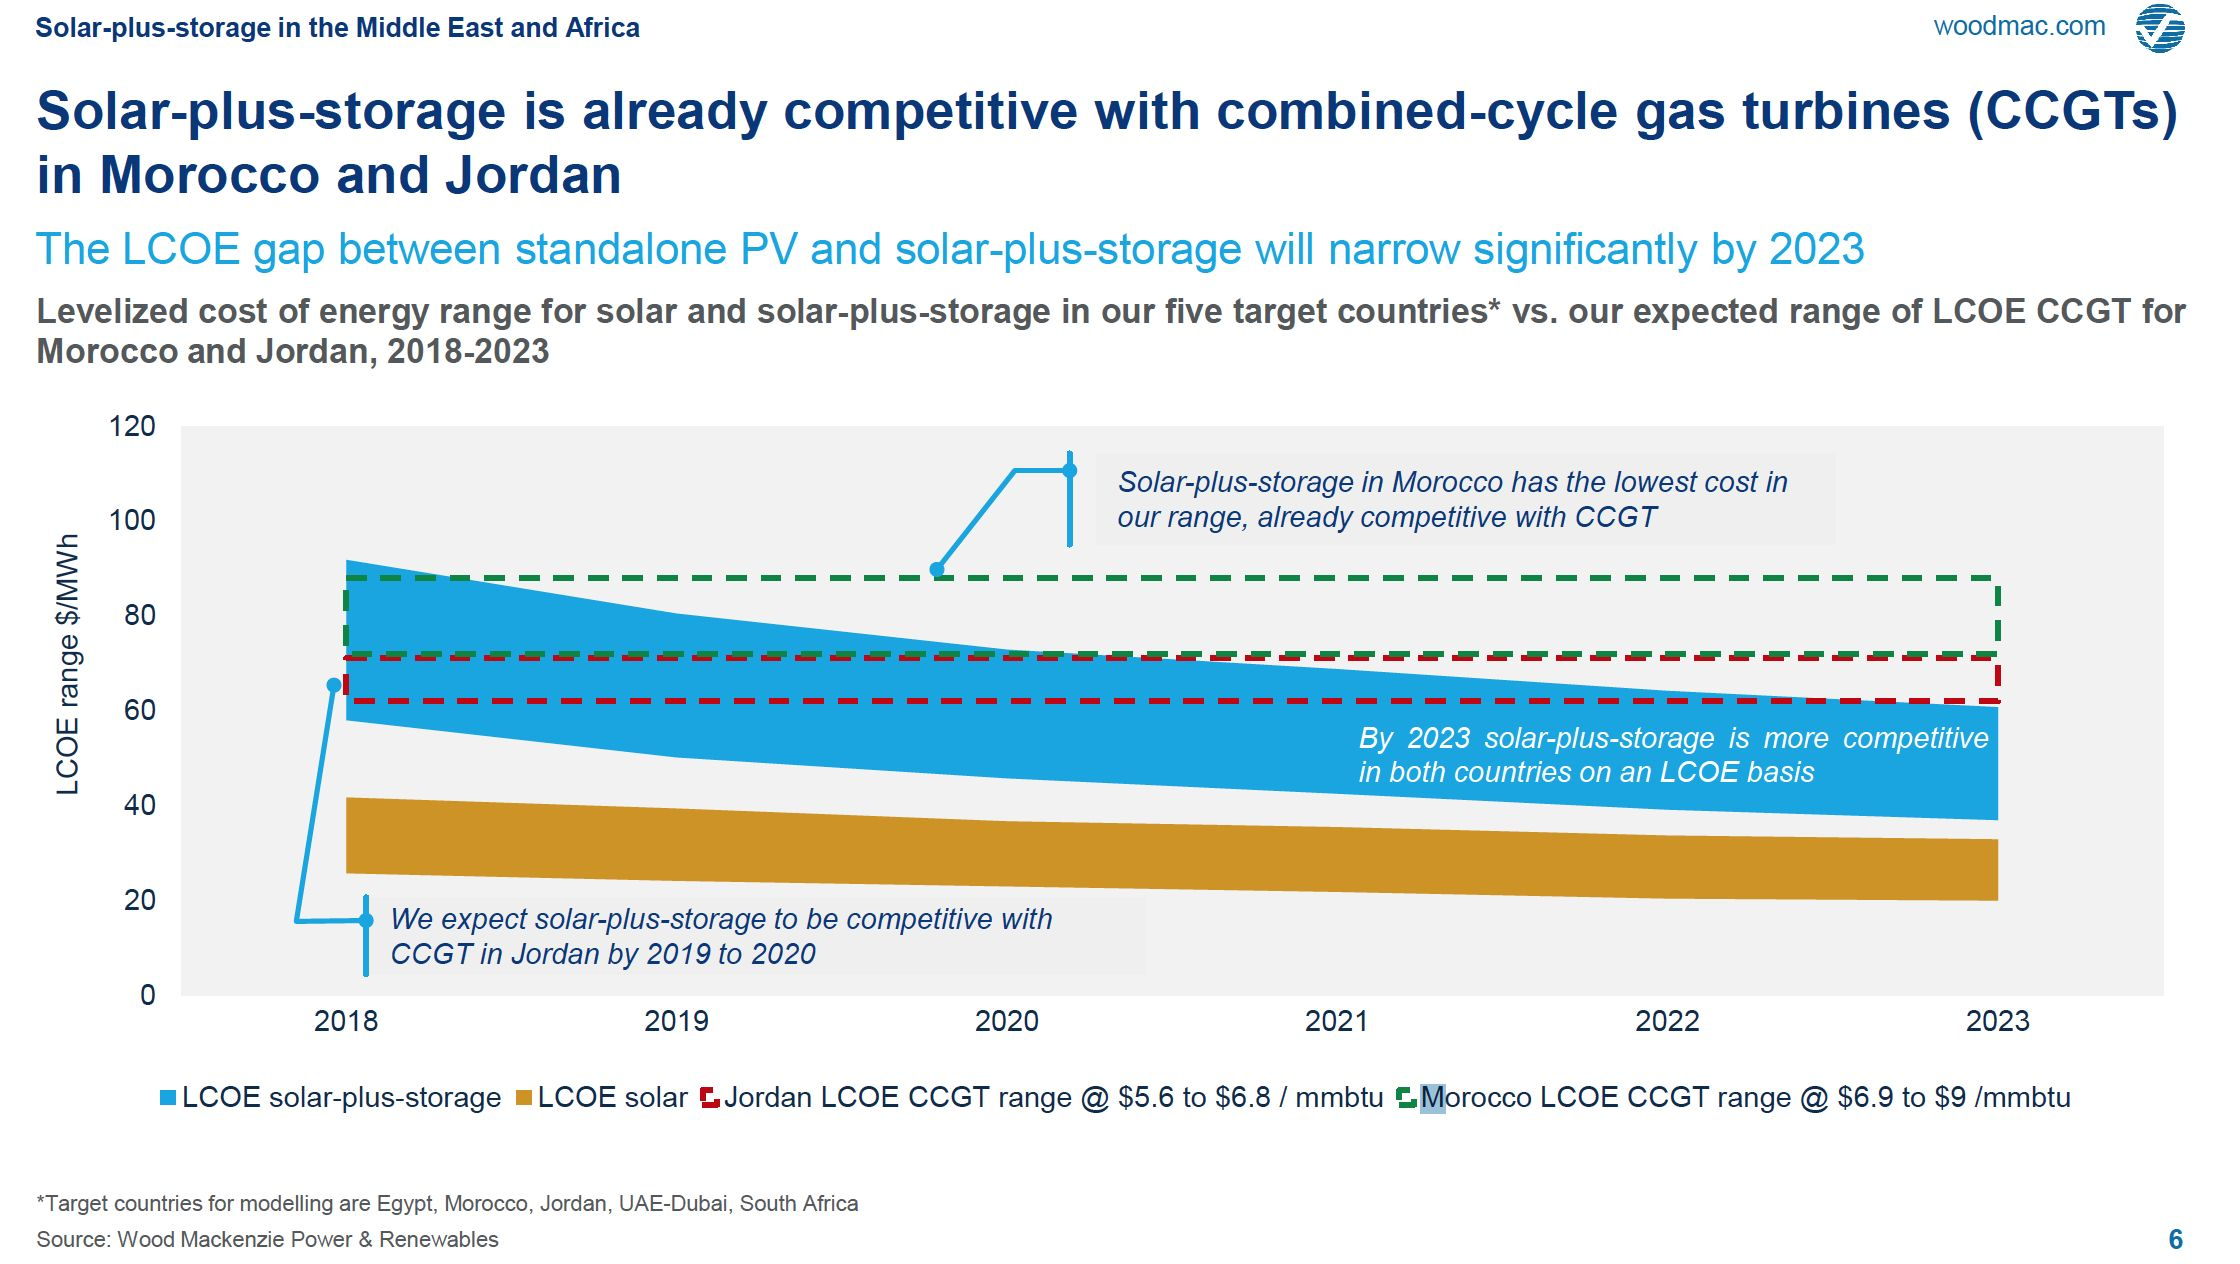 Solar-Plus-Storage Beats Combined-Cycle Gas in Jordan and